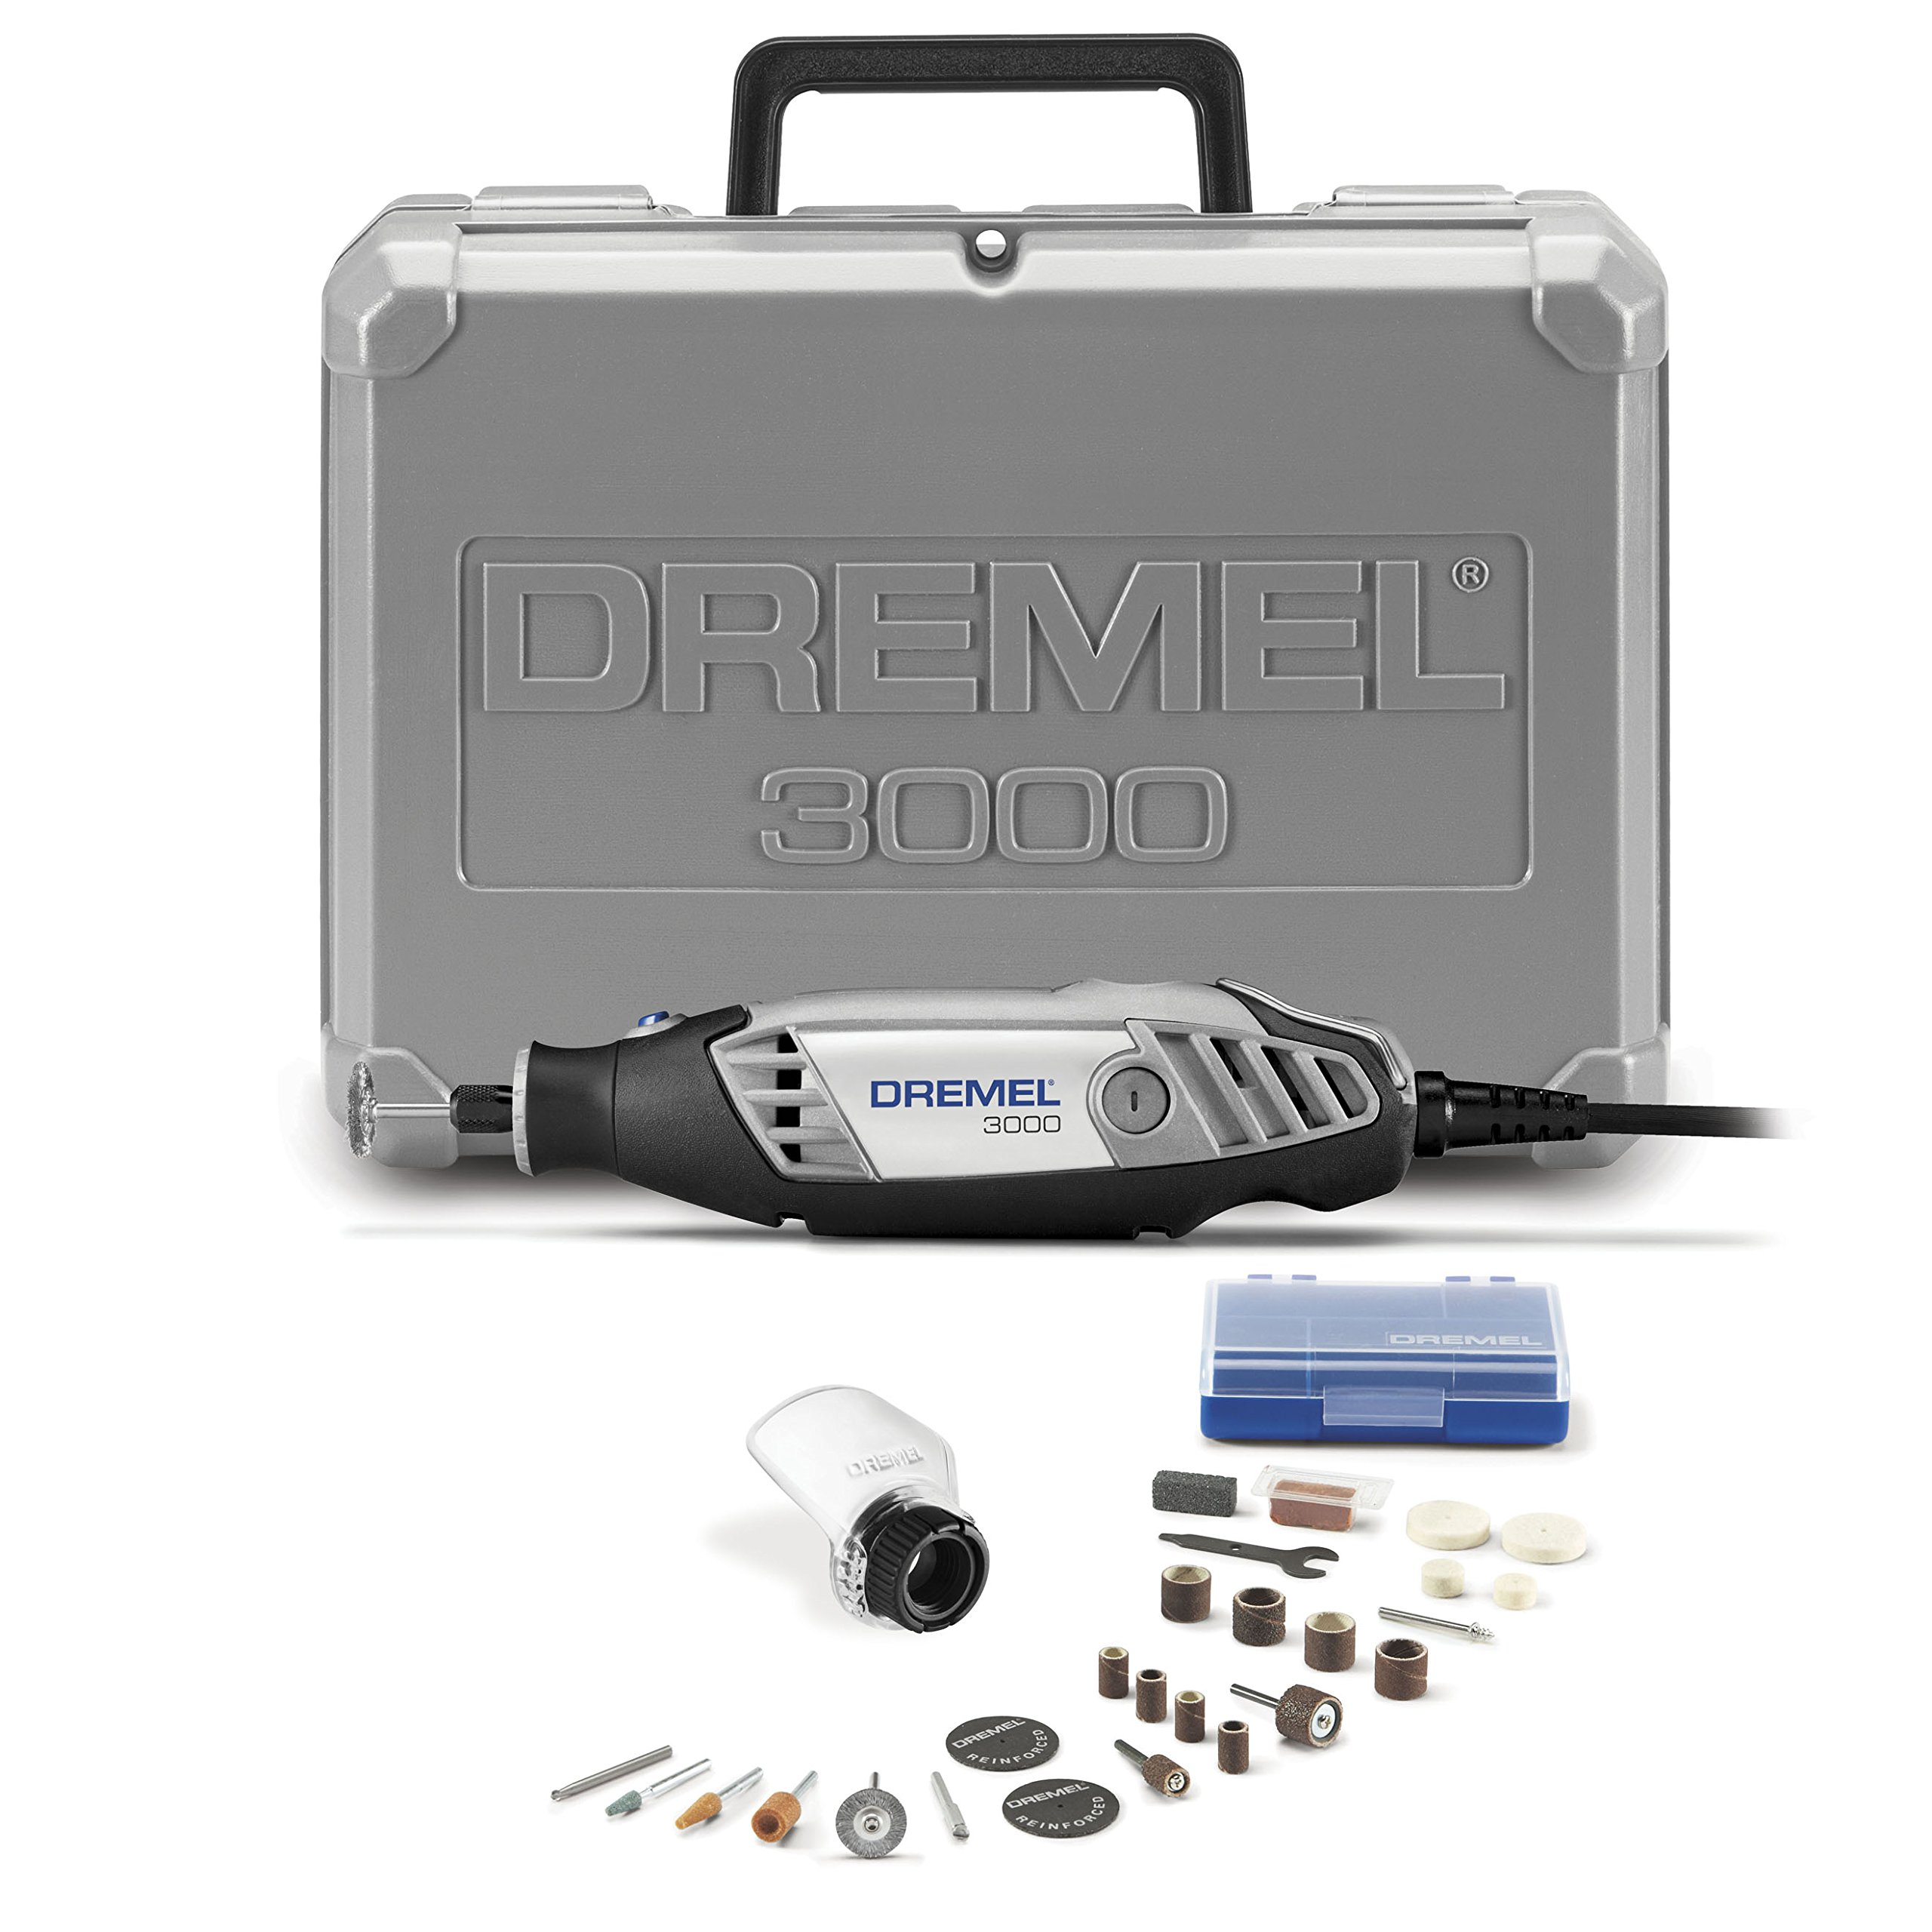 Dremel 3000-1/25 120-volt Variable Speed Rotary Tool Kit with 1 Attachment and 25 Accessories